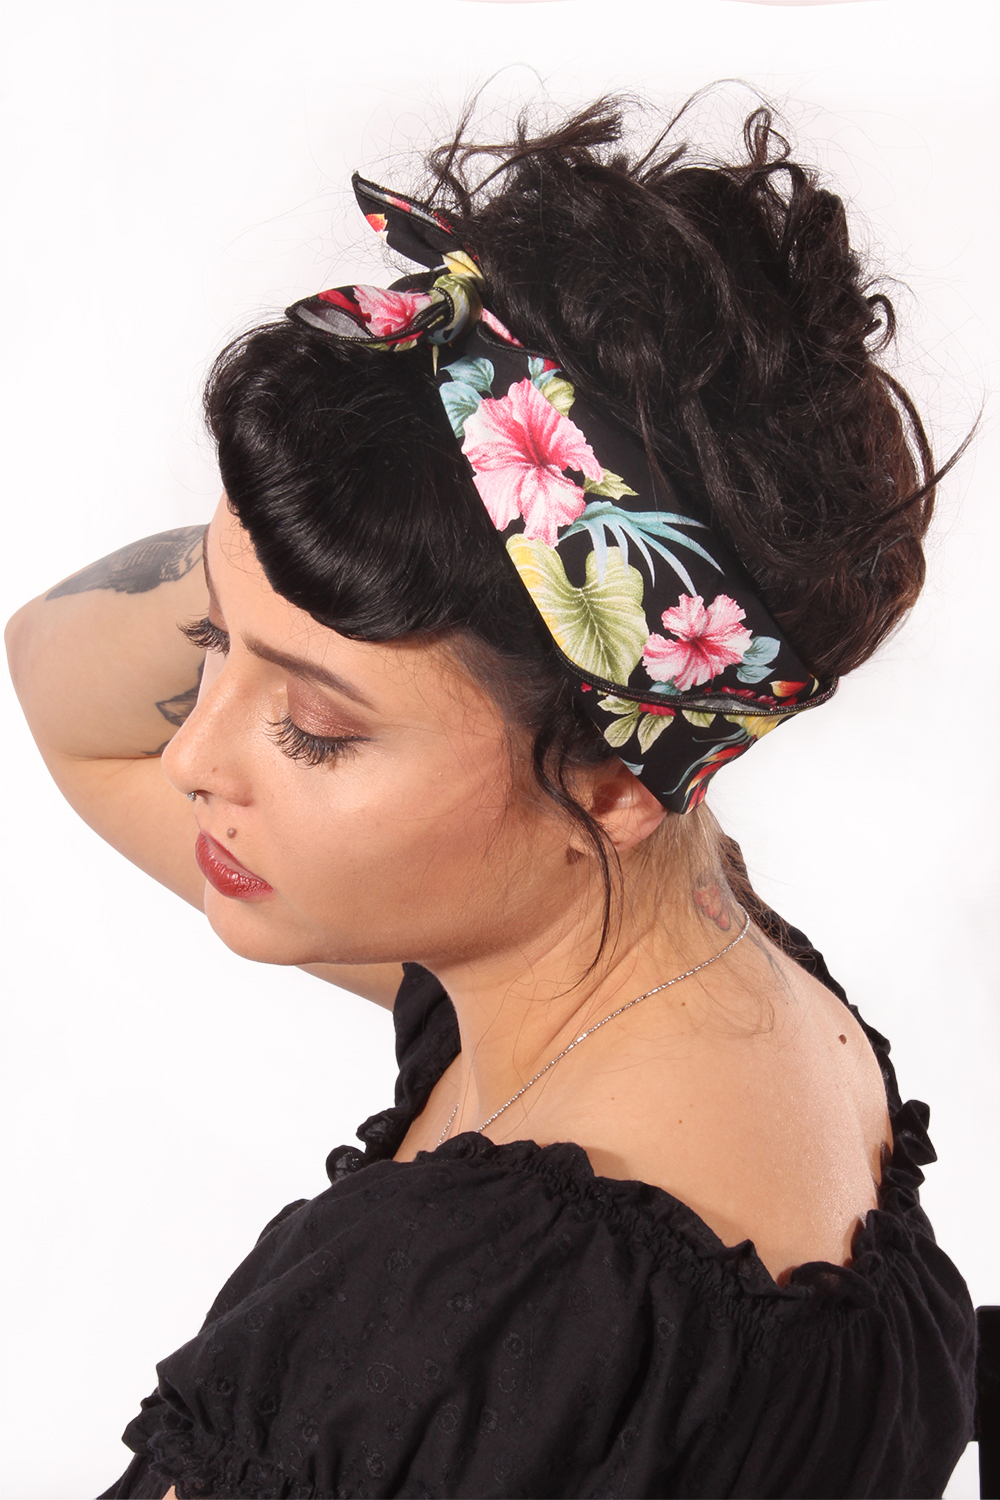 Hibiskus Hawaii rockabilly Hawaiiblüten pin up Tuch Bandana Haarband